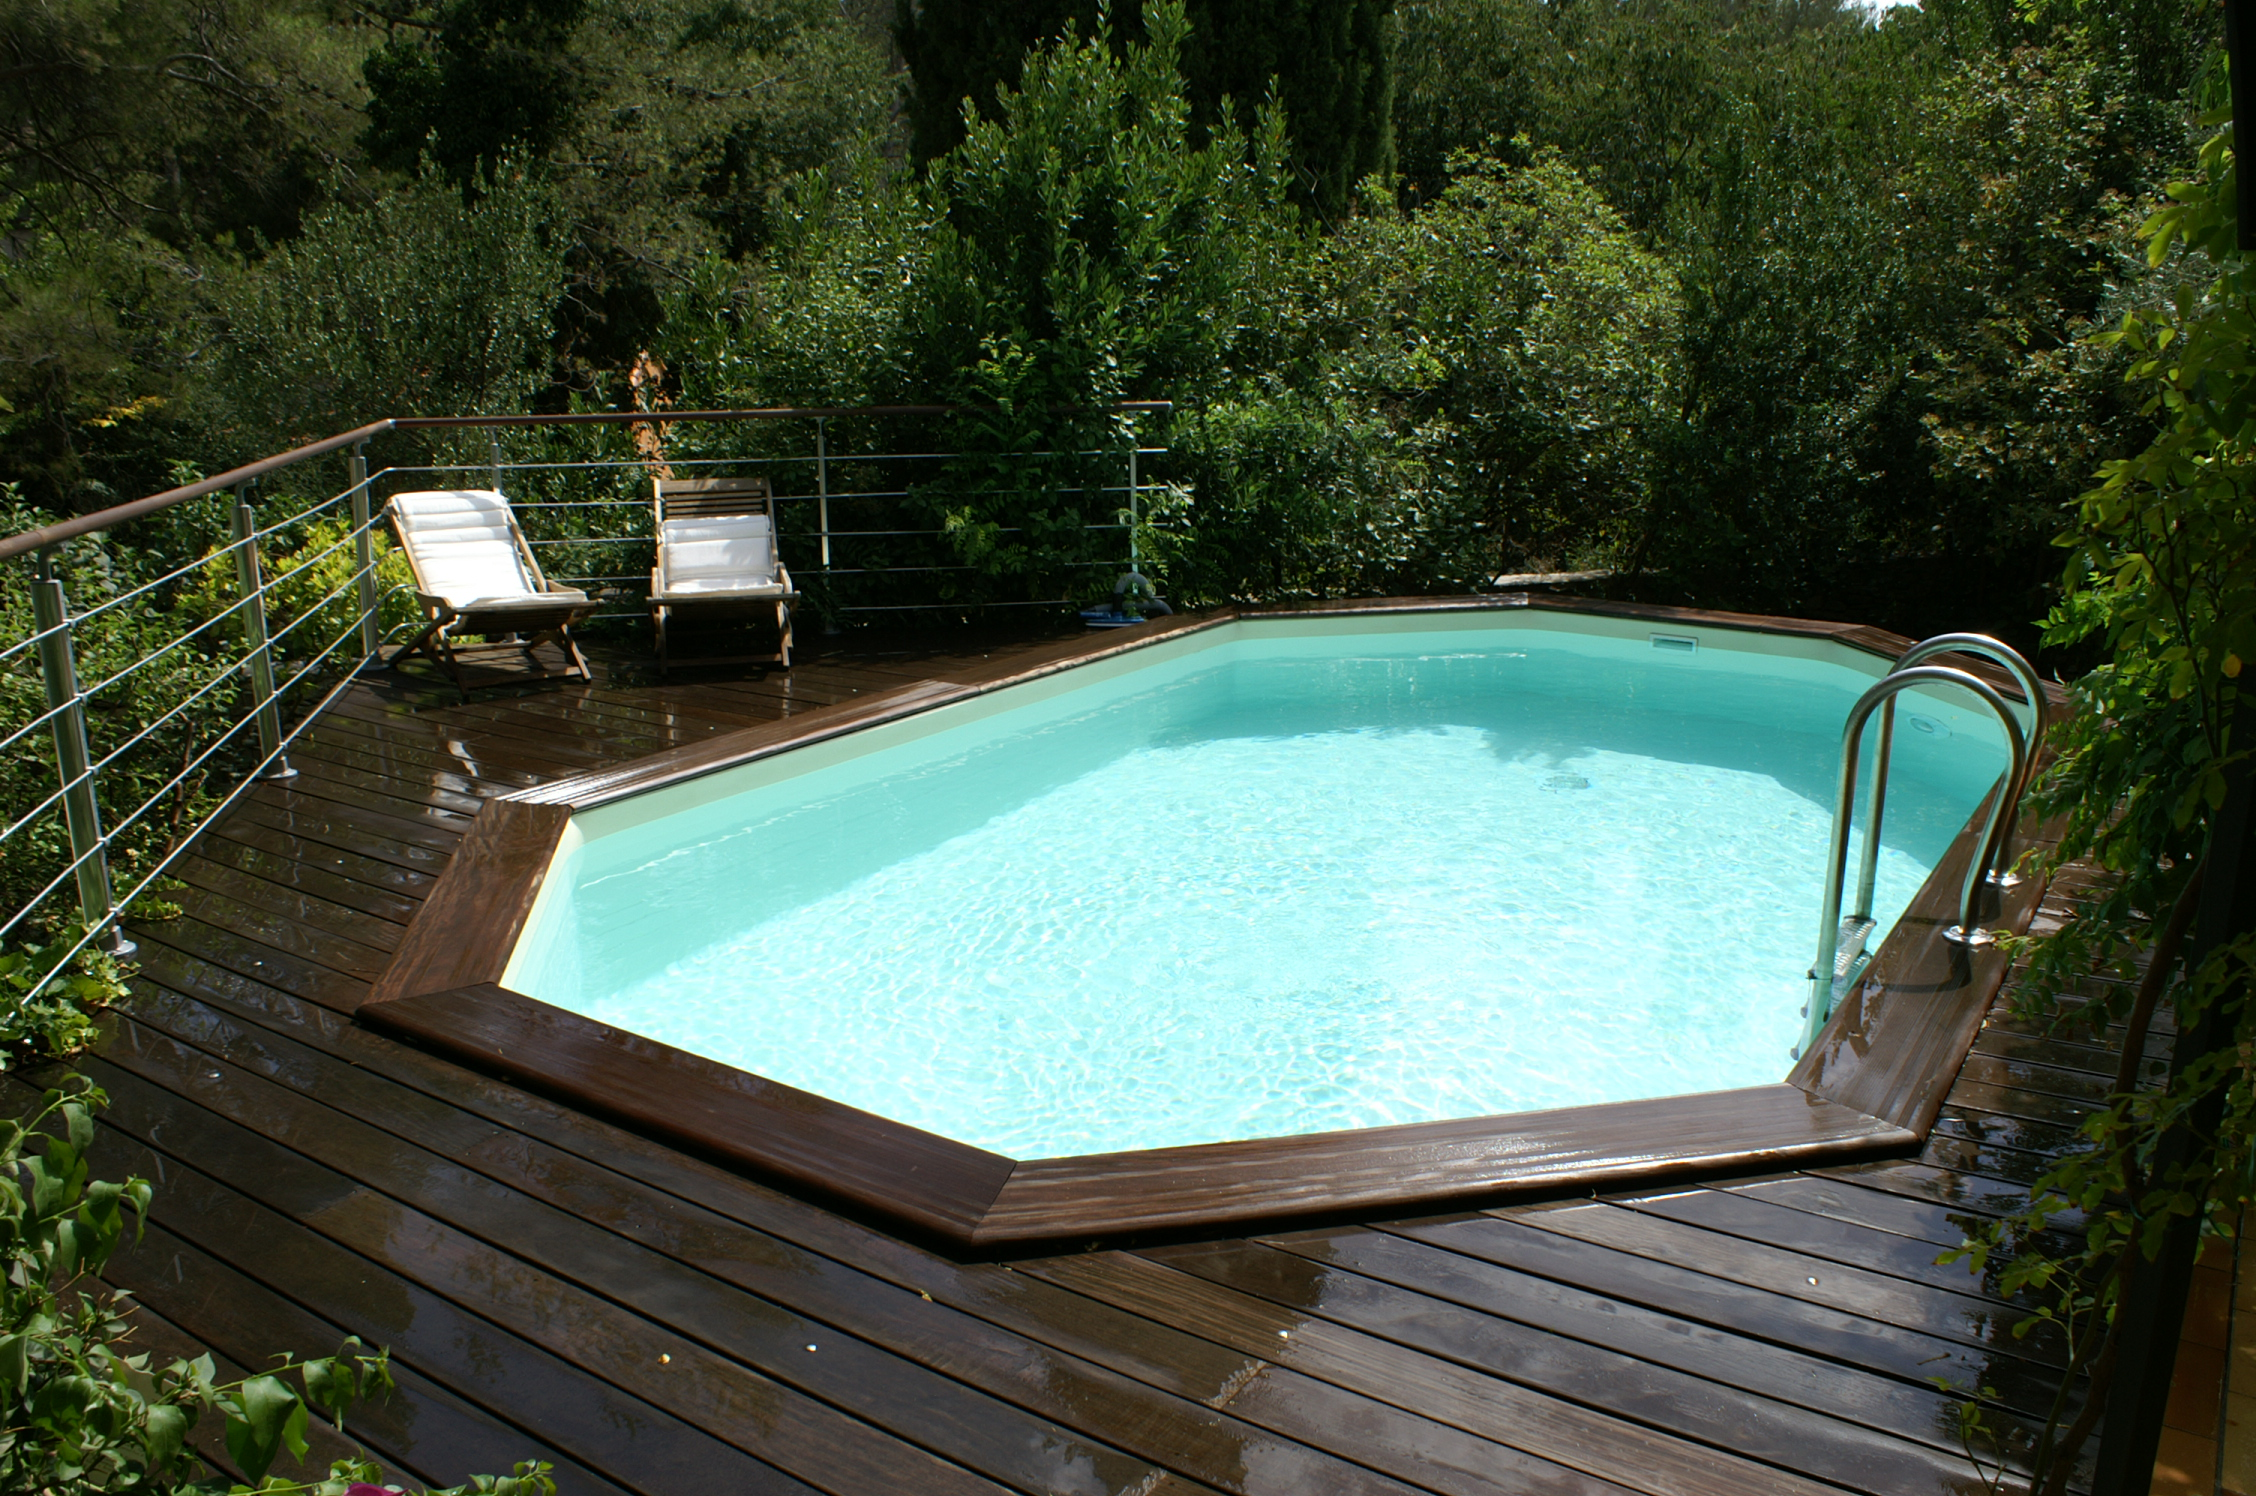 Amenagement piscine bois hors sol id es de conception sont int ressants Amenagement piscine hors sol